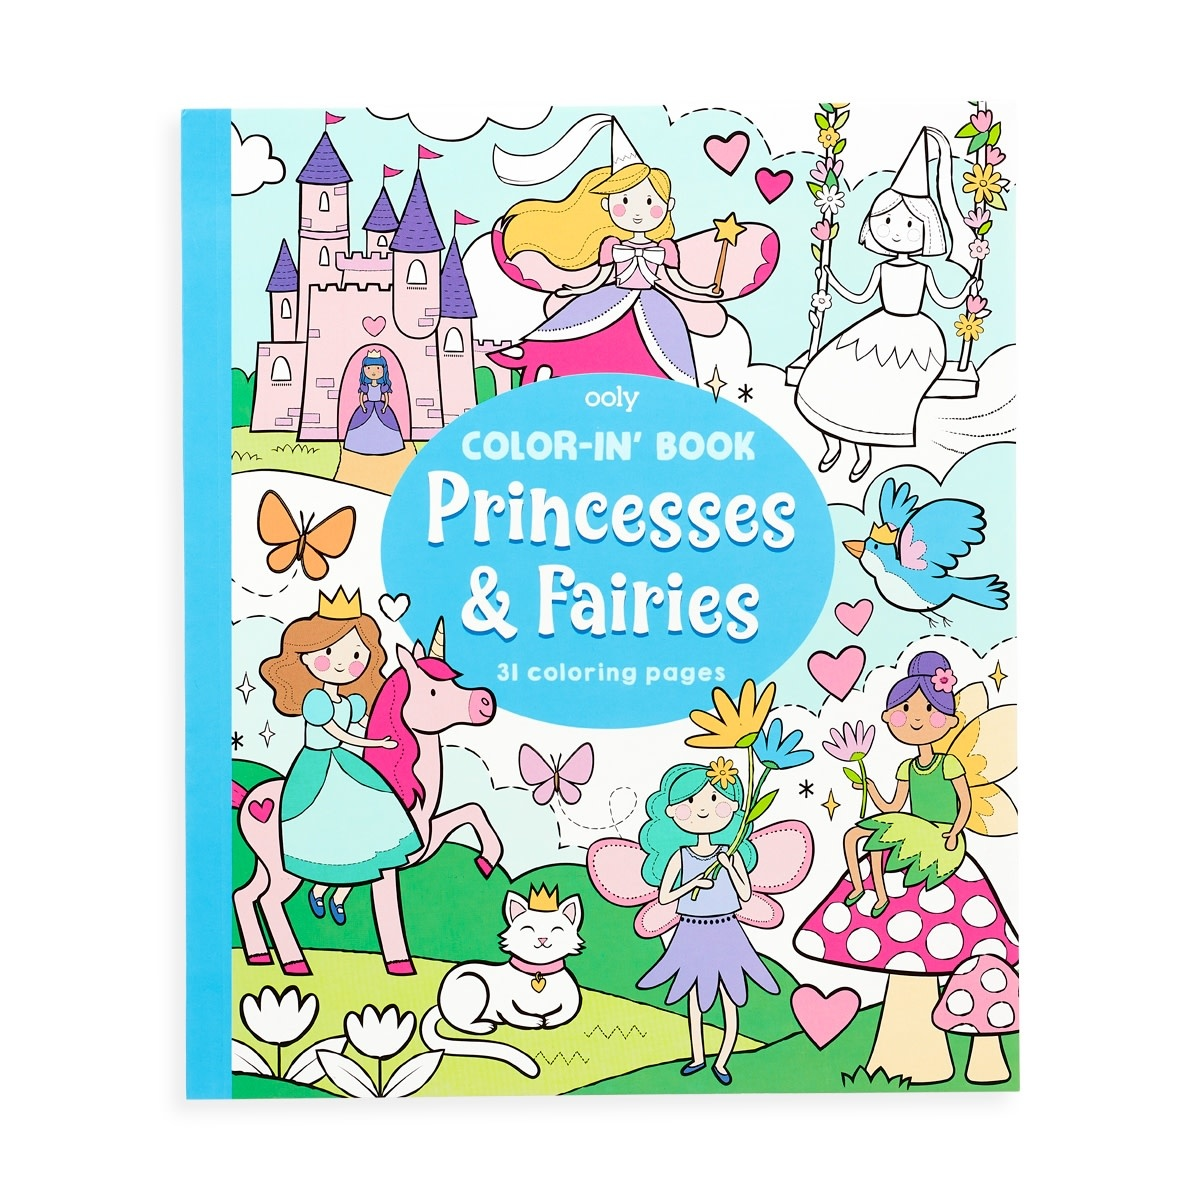 Ooly Color-in' Book - Princesses & Fairies